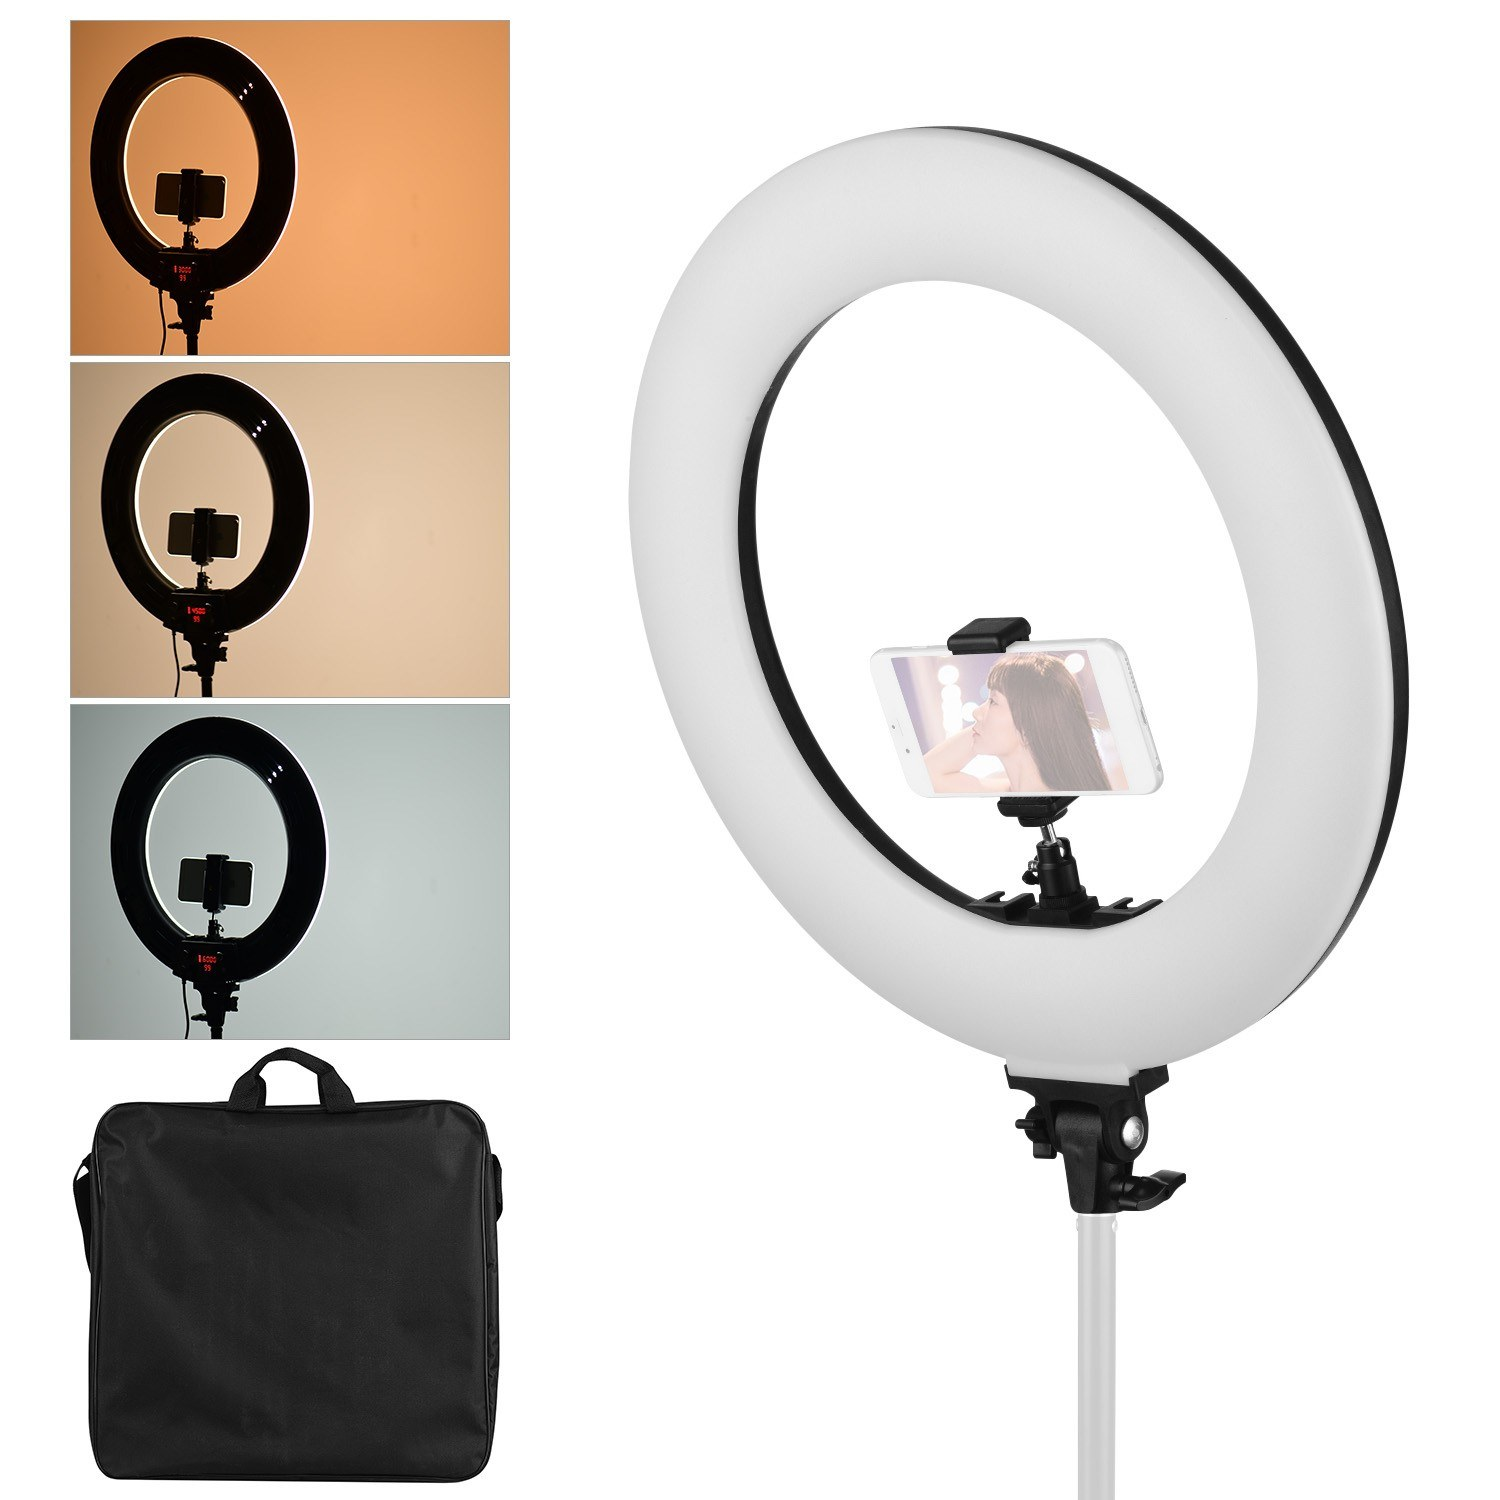 18 Inch LED Ring Light Fill-in Lamp 60W Dimmable Brightness Adjustable 3000-6000K Color Temperature Lighting with Ballhead Cell Phone Holders for Photography Shooting Makeup Vlogging